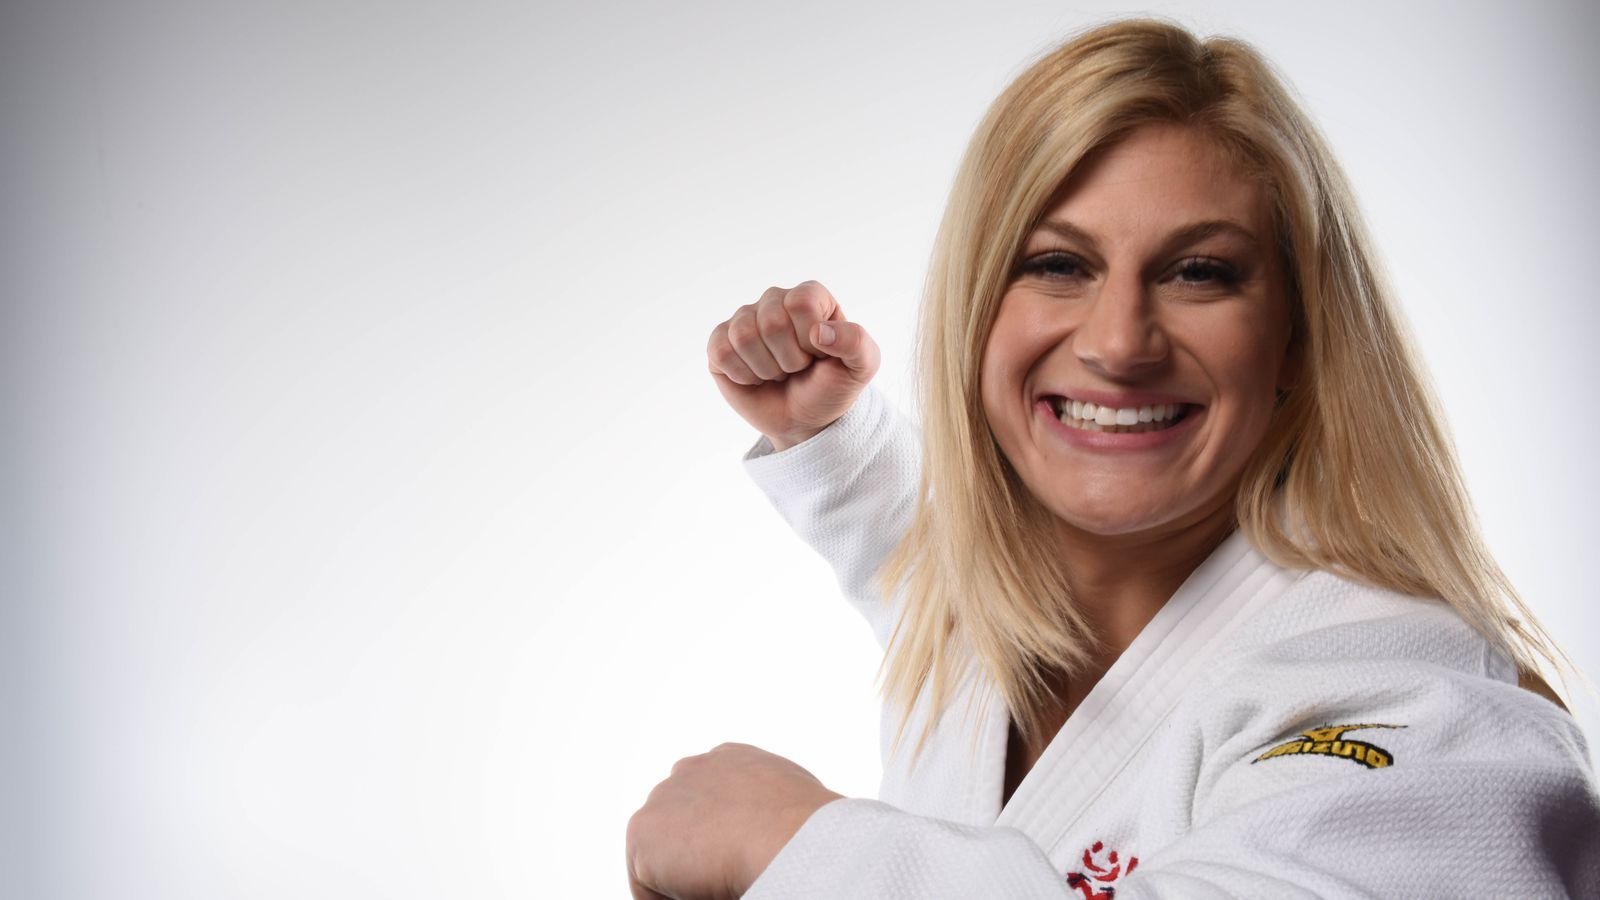 kayla harrison can win gold in rio  will she follow ronda